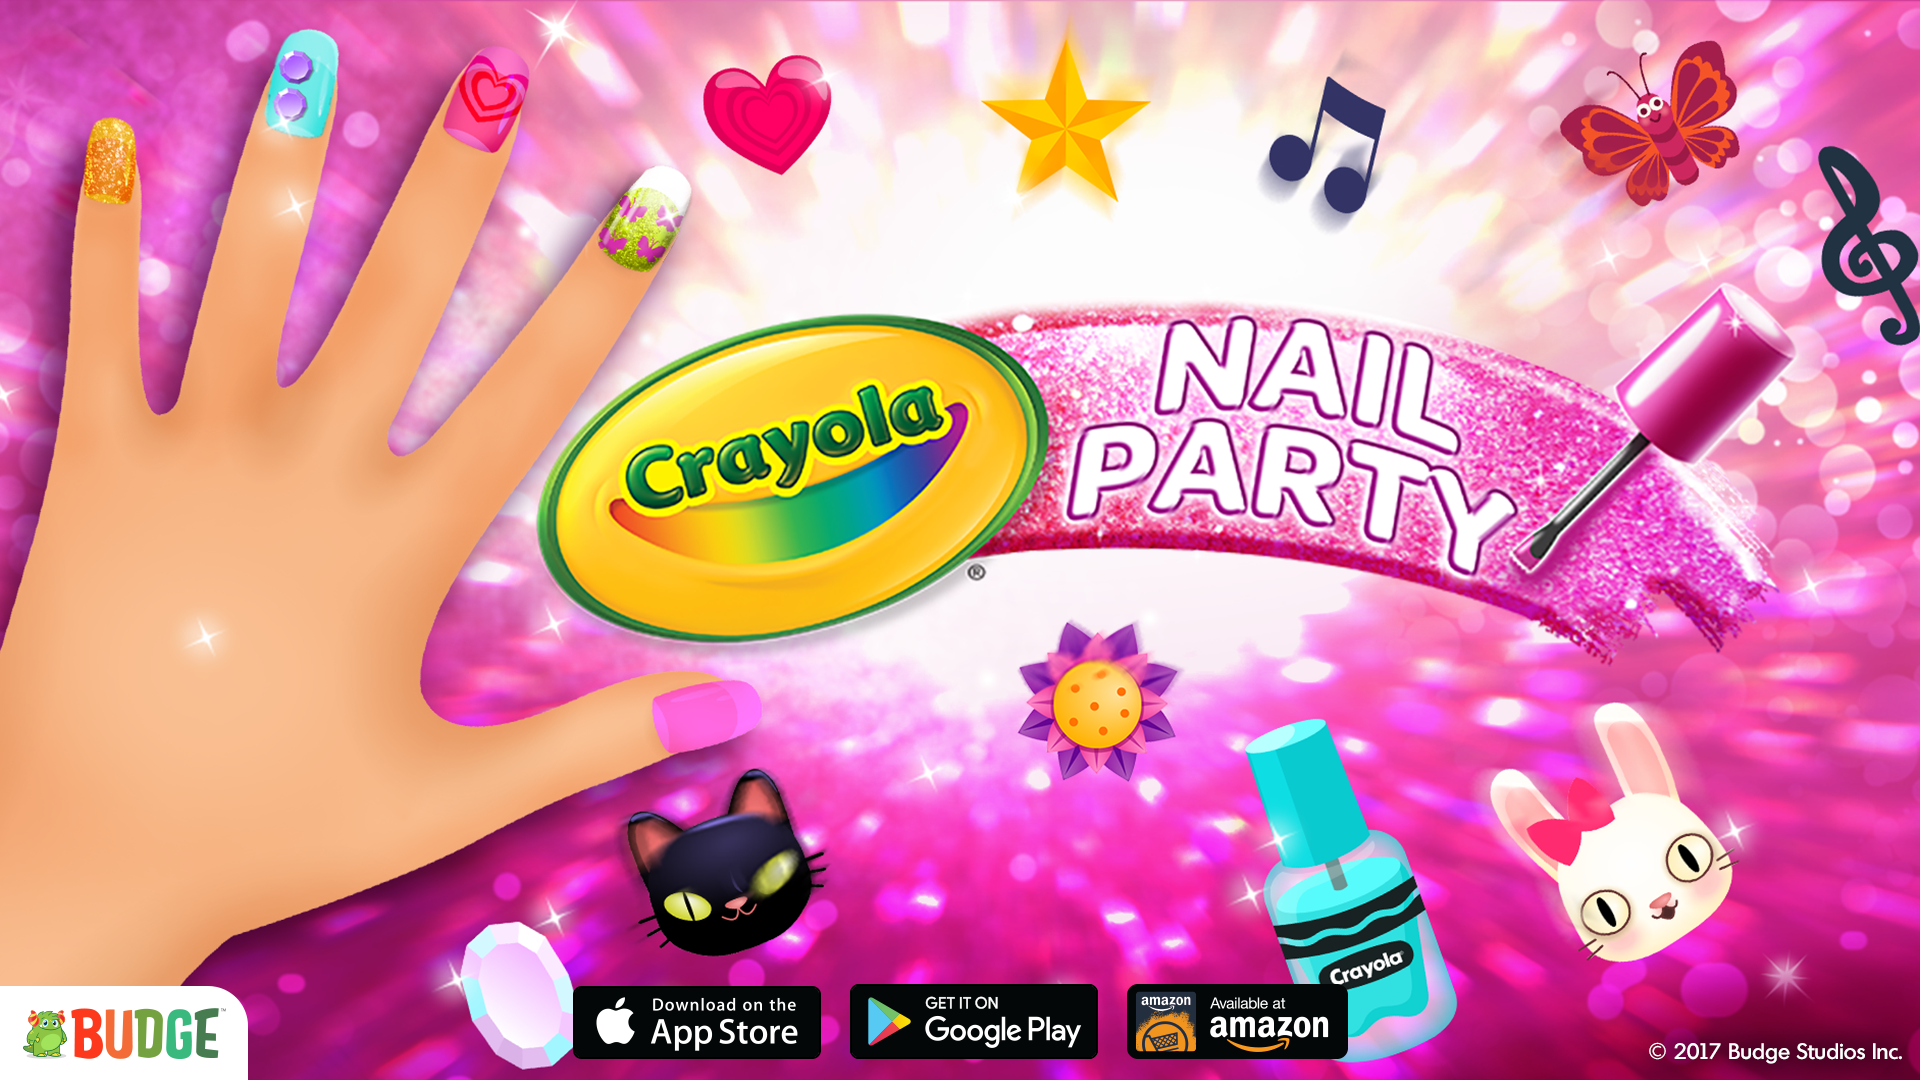 Crayola Nail Party - Budge Studios—Mobile Apps For Kids